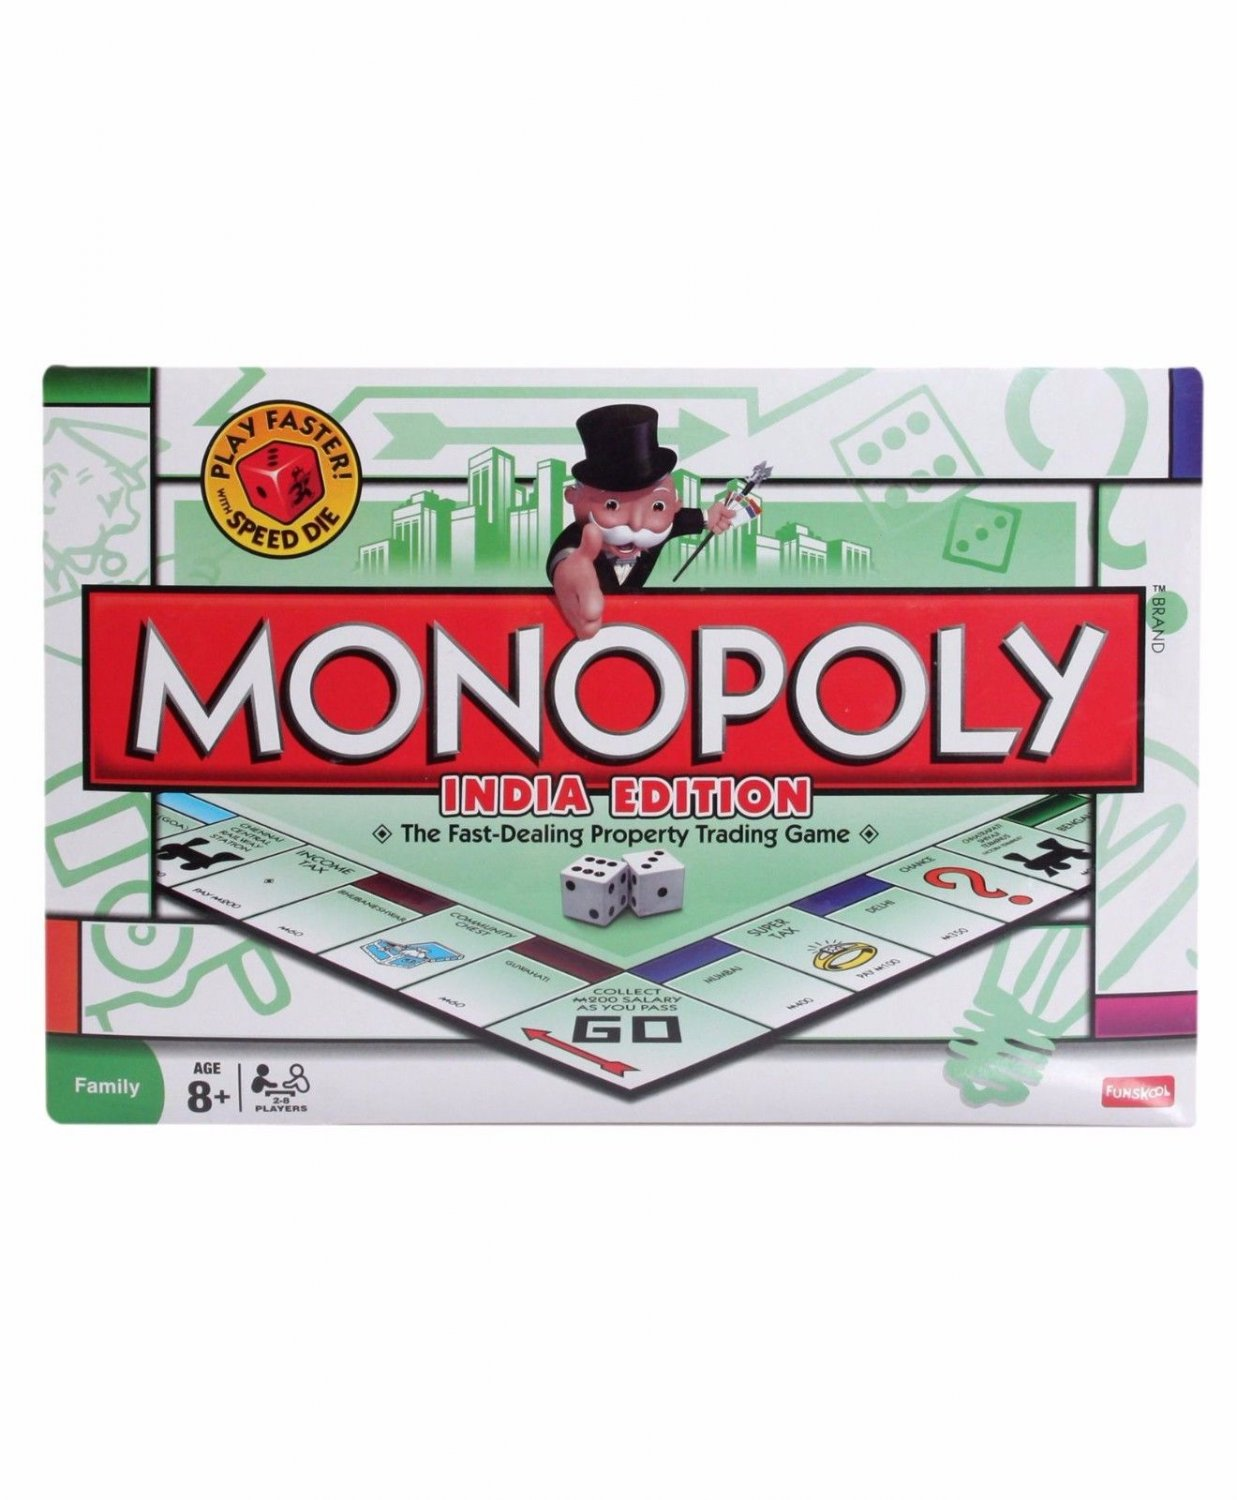 Funskool Monopoly India Edition Board Game 2-8 Players Indoor Game Age 8+ Family